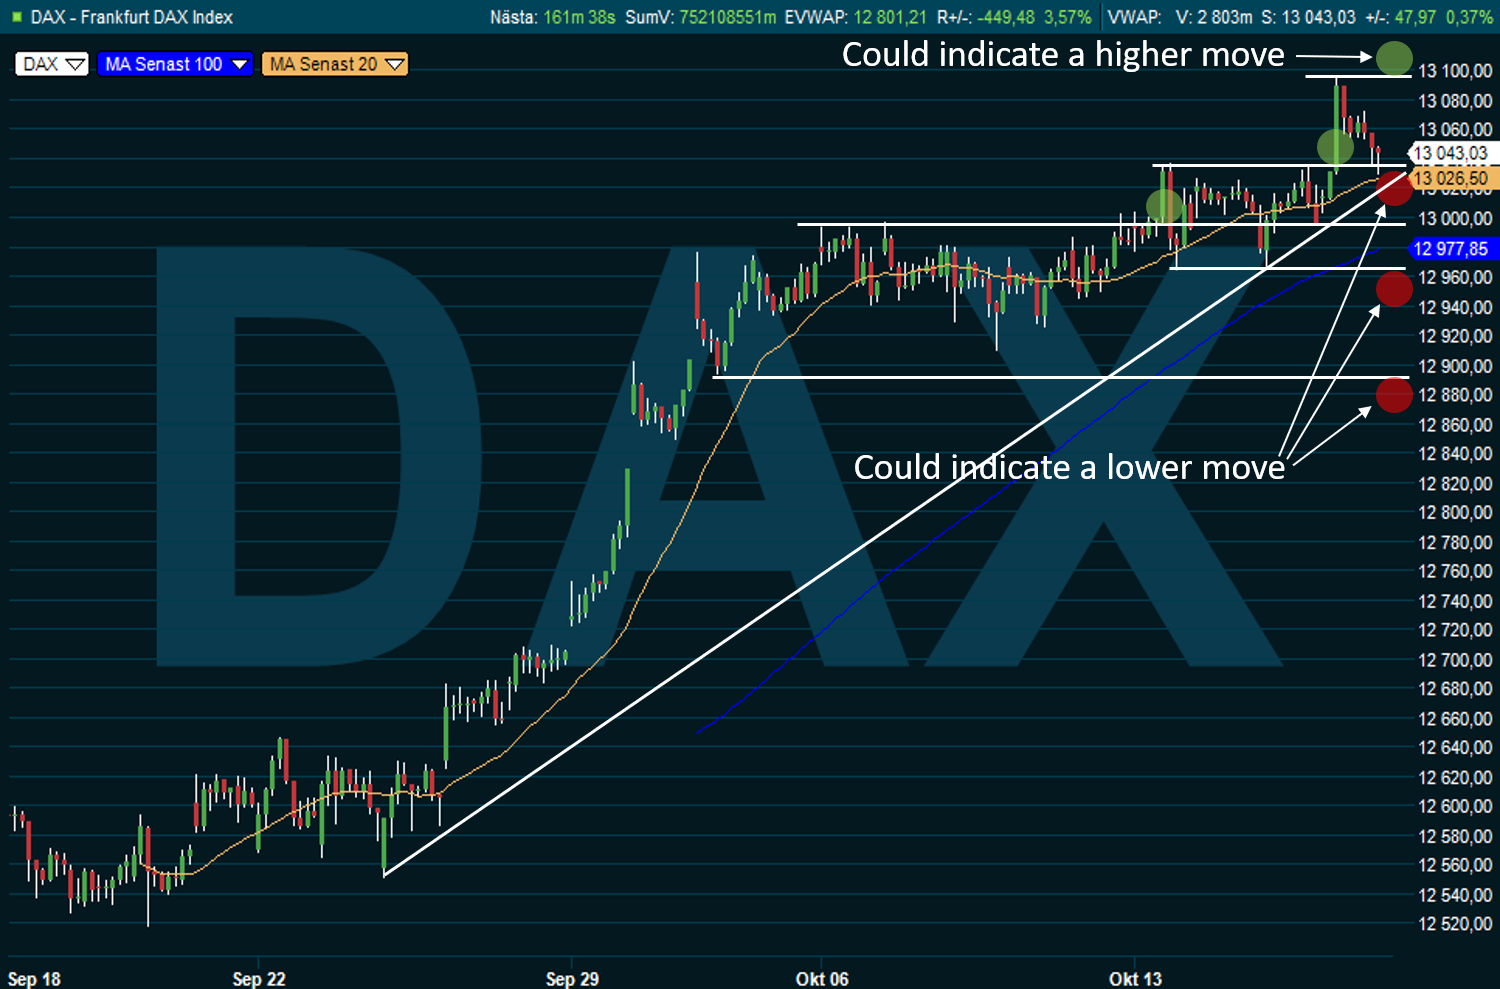 Strength appears in DAX, but continues to show signs of